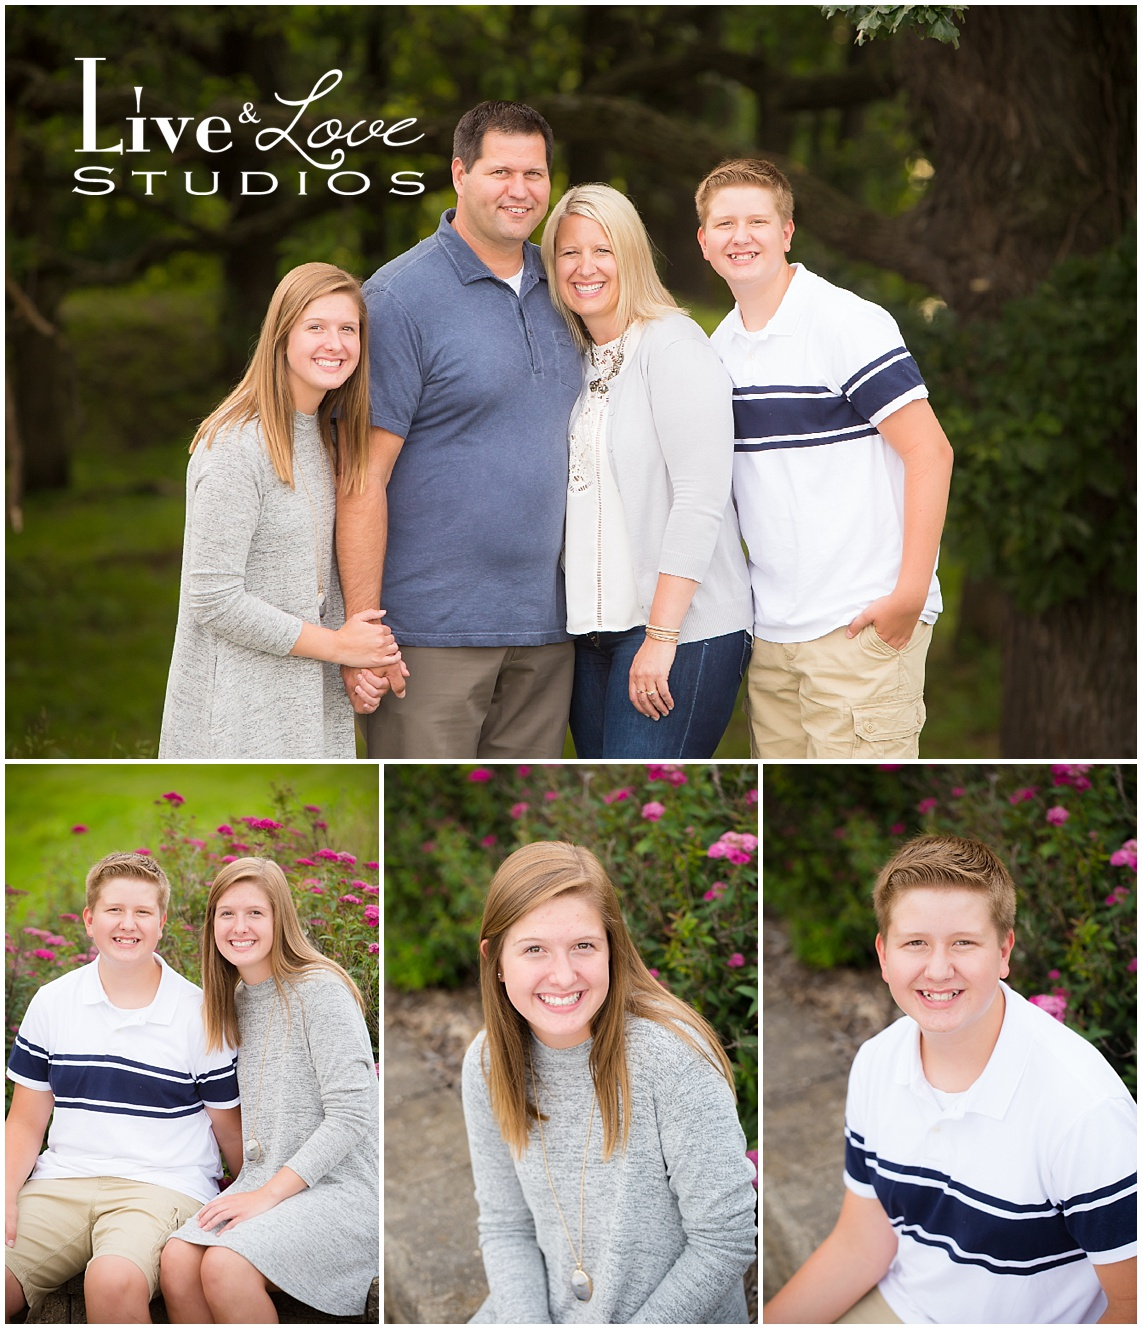 eagan-mn-extended-family-photographer_0068.jpg